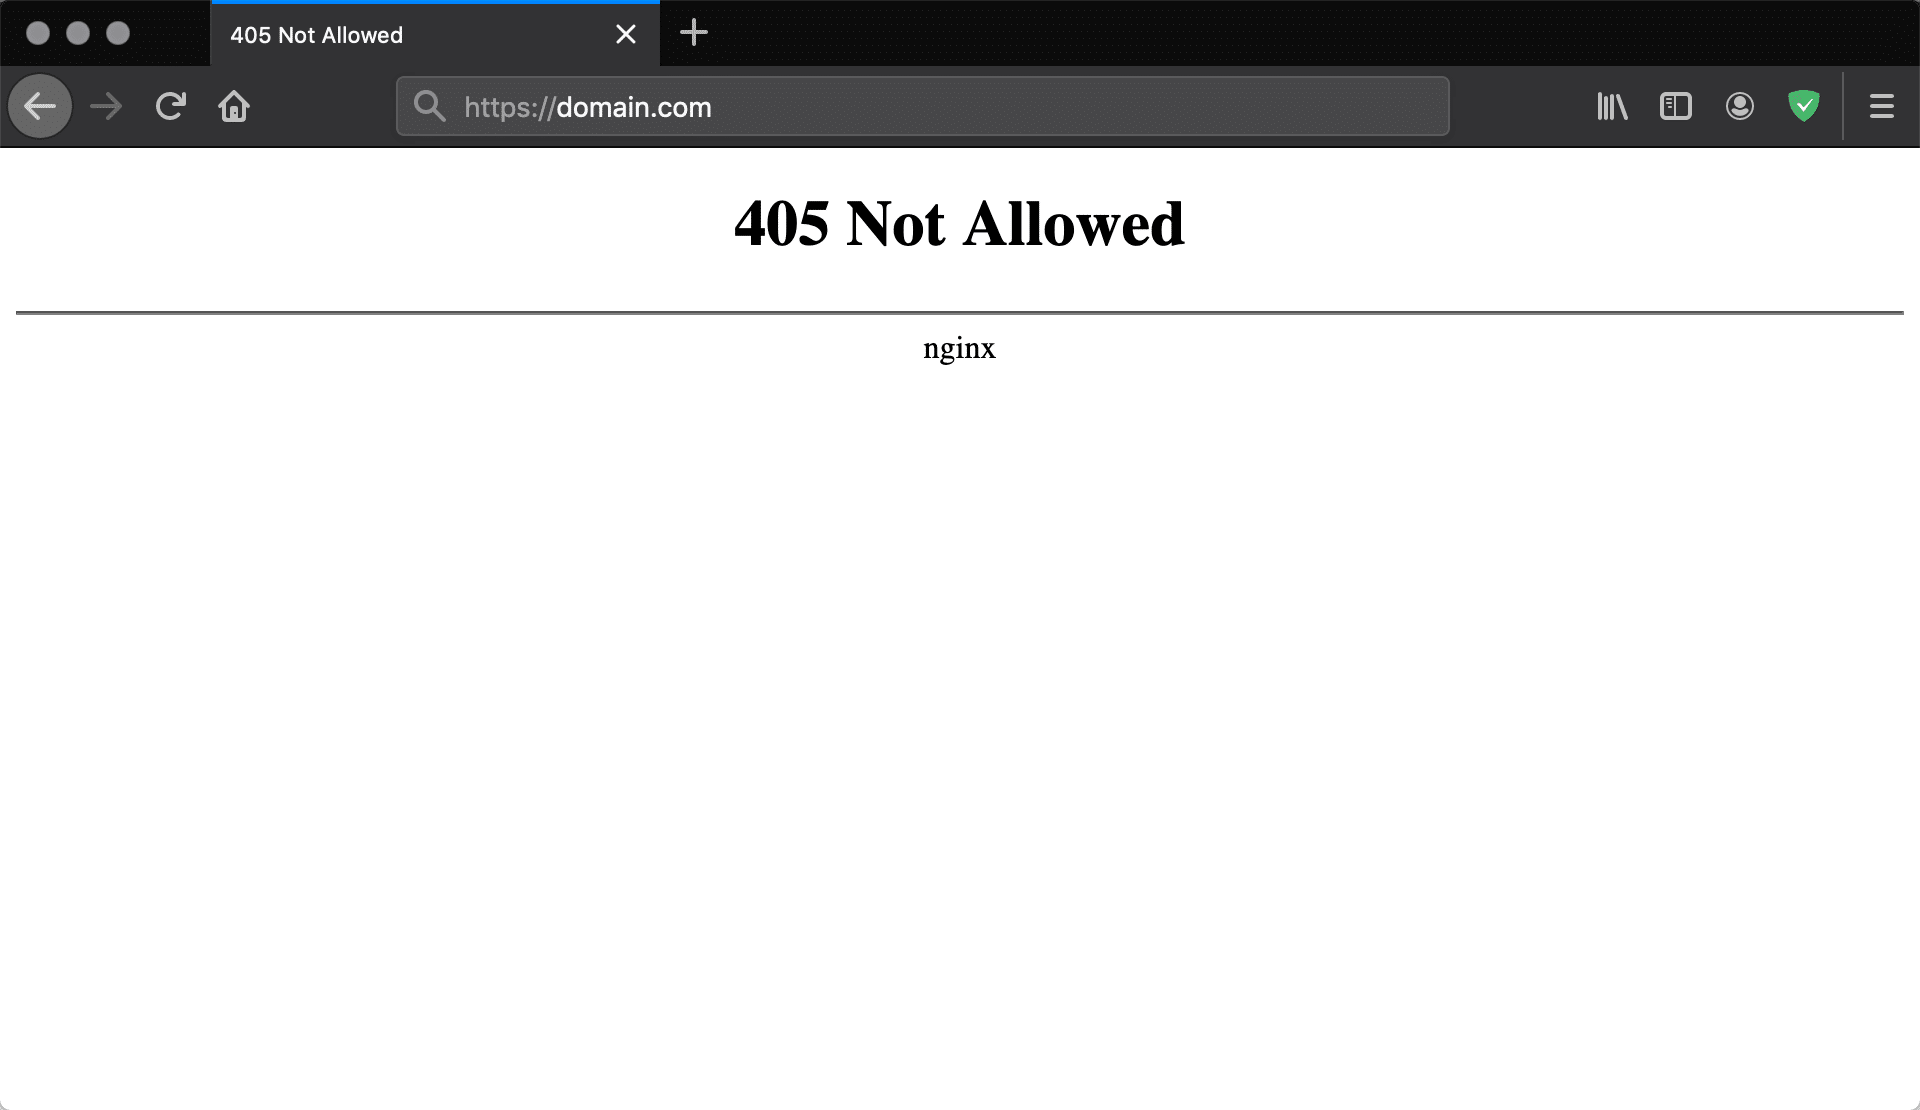 405 Not Allowed Error Nginx in Firefox